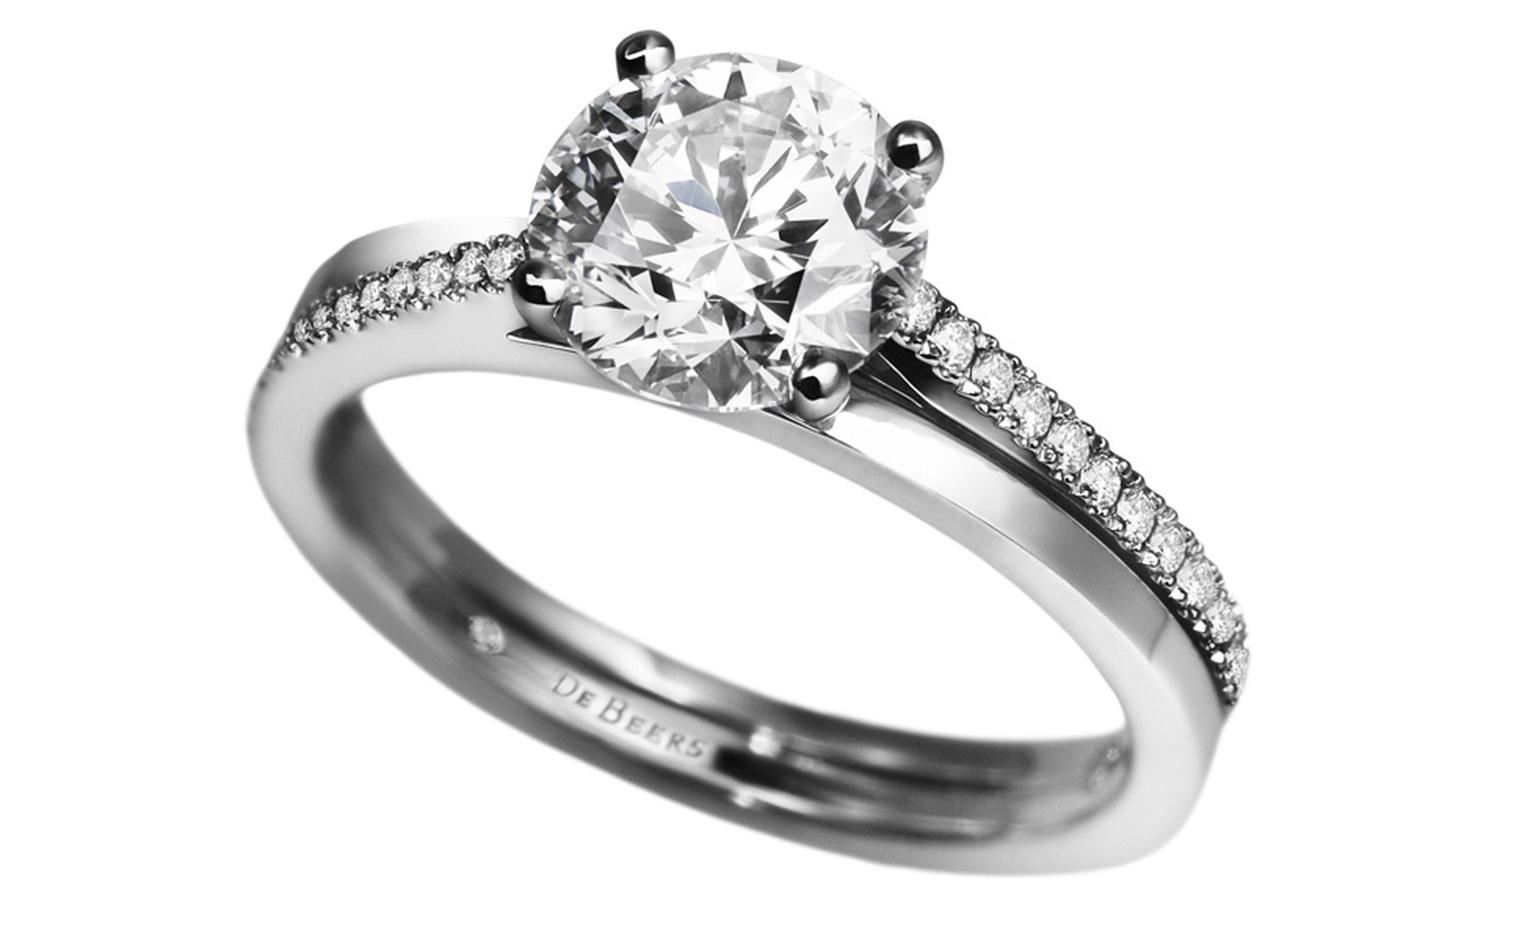 De Beers Promise ring from £2,600 for 0.4 carat diamond